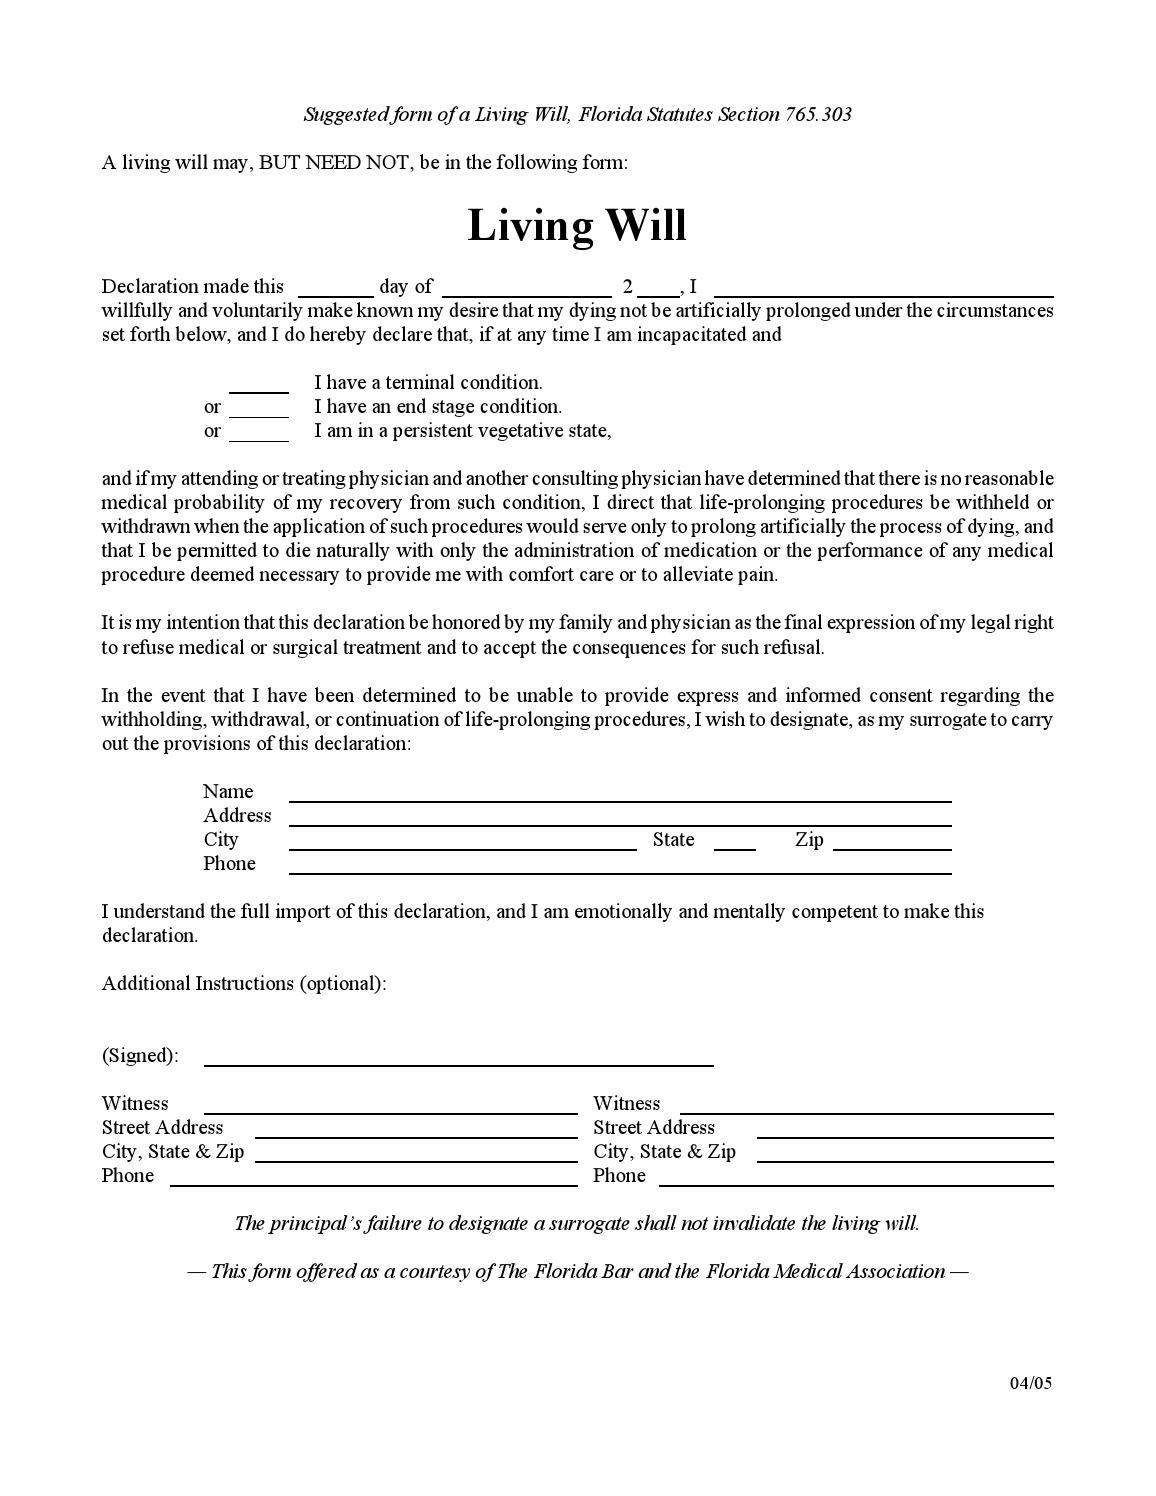 template for wills - florida living will by wfla newschannel8 issuu